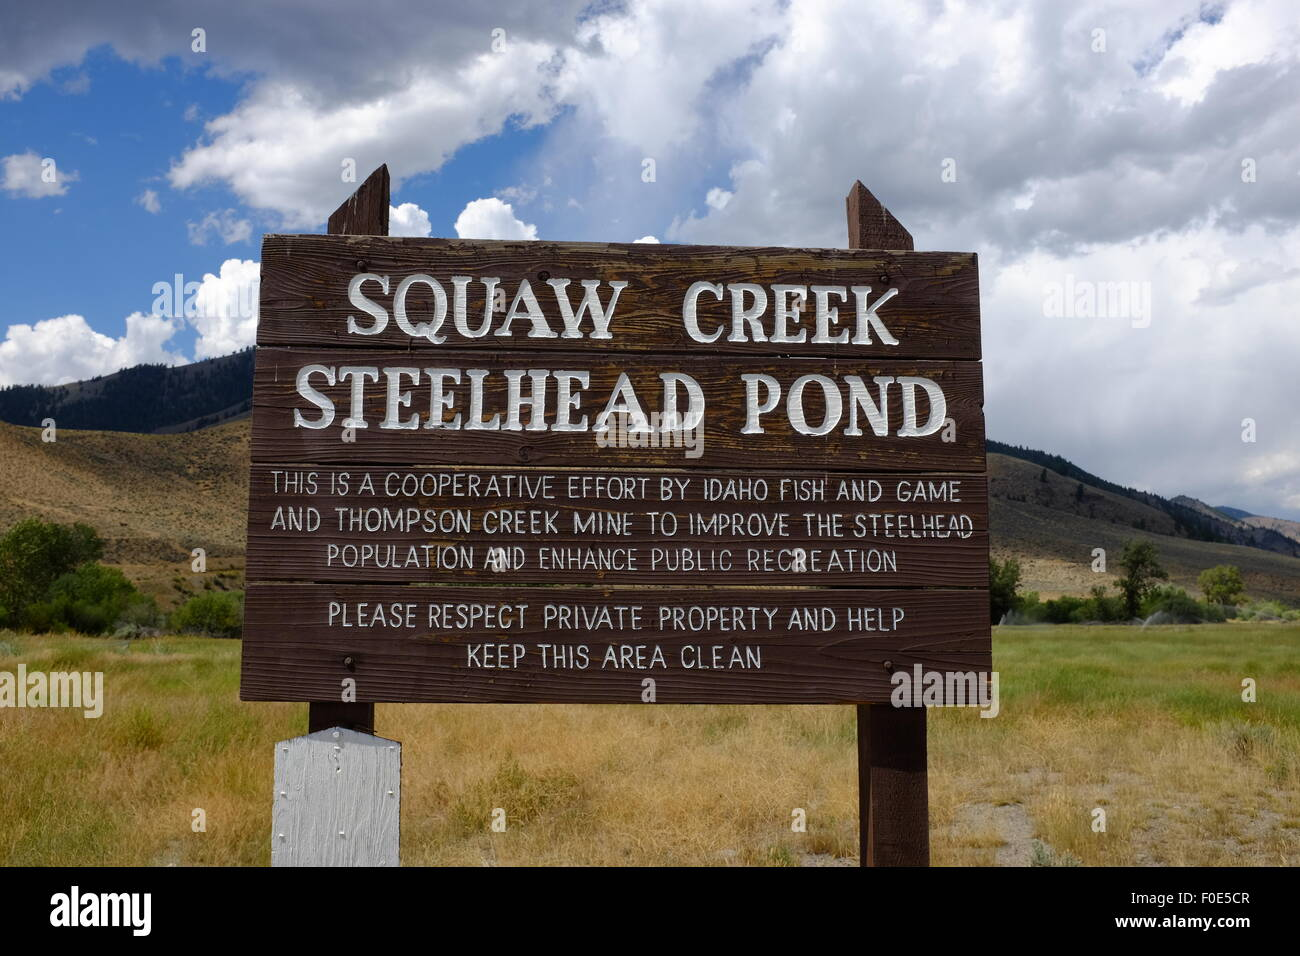 The Steelhead Pond near Clayton, Idaho - Stock Image